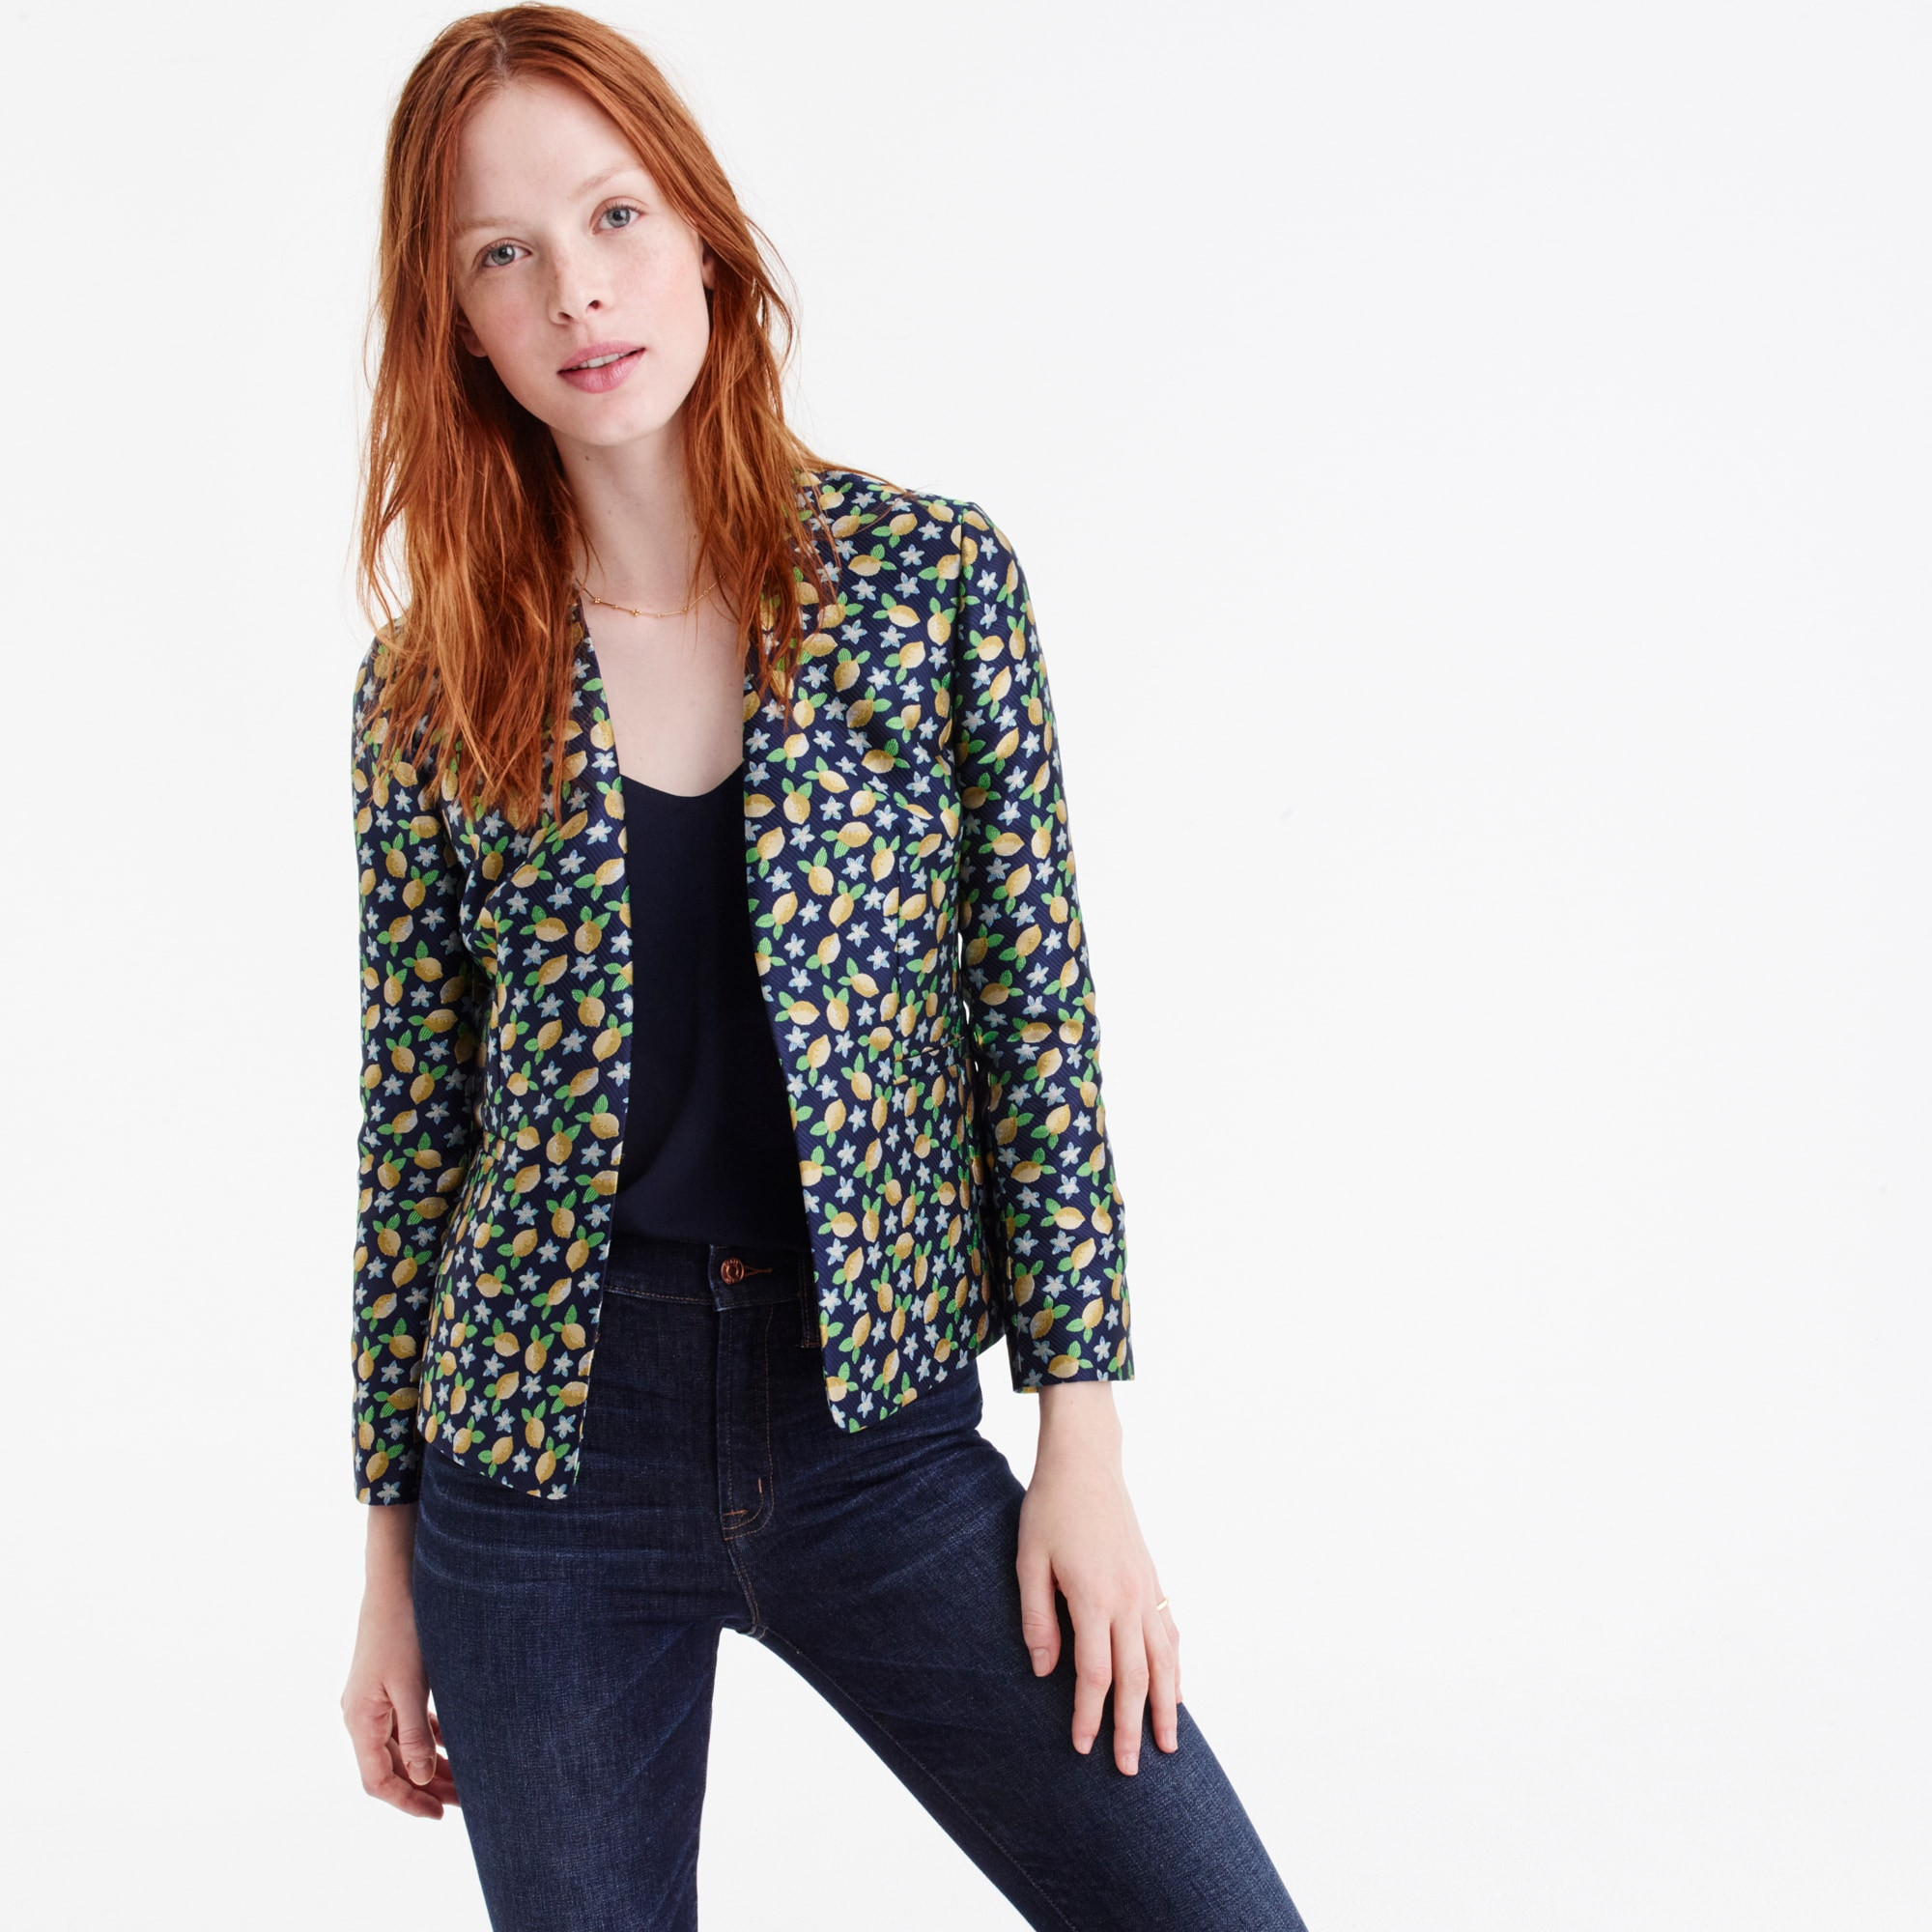 Image 3 for Going-out blazer in lemon jacquard